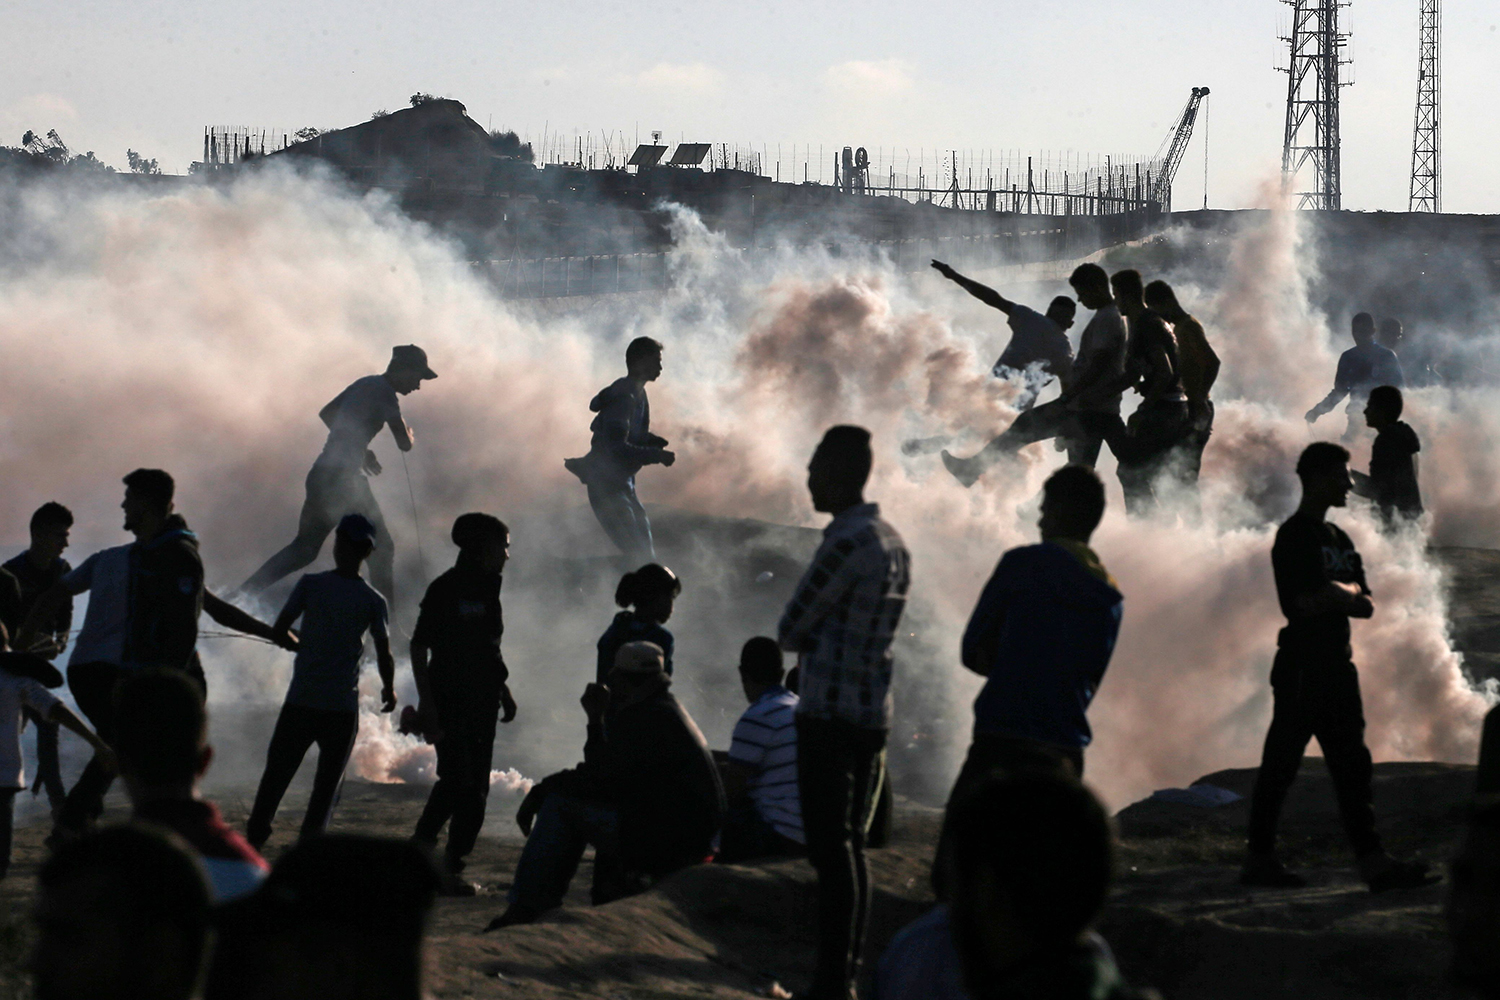 Palestinian protesters stand amid tear gas canisters fired by Israeli forces during a demonstration along the border with Israel east of Bureij in the central Gaza Strip on Nov. 1. MAHMUD HAMS/AFP via Getty Images